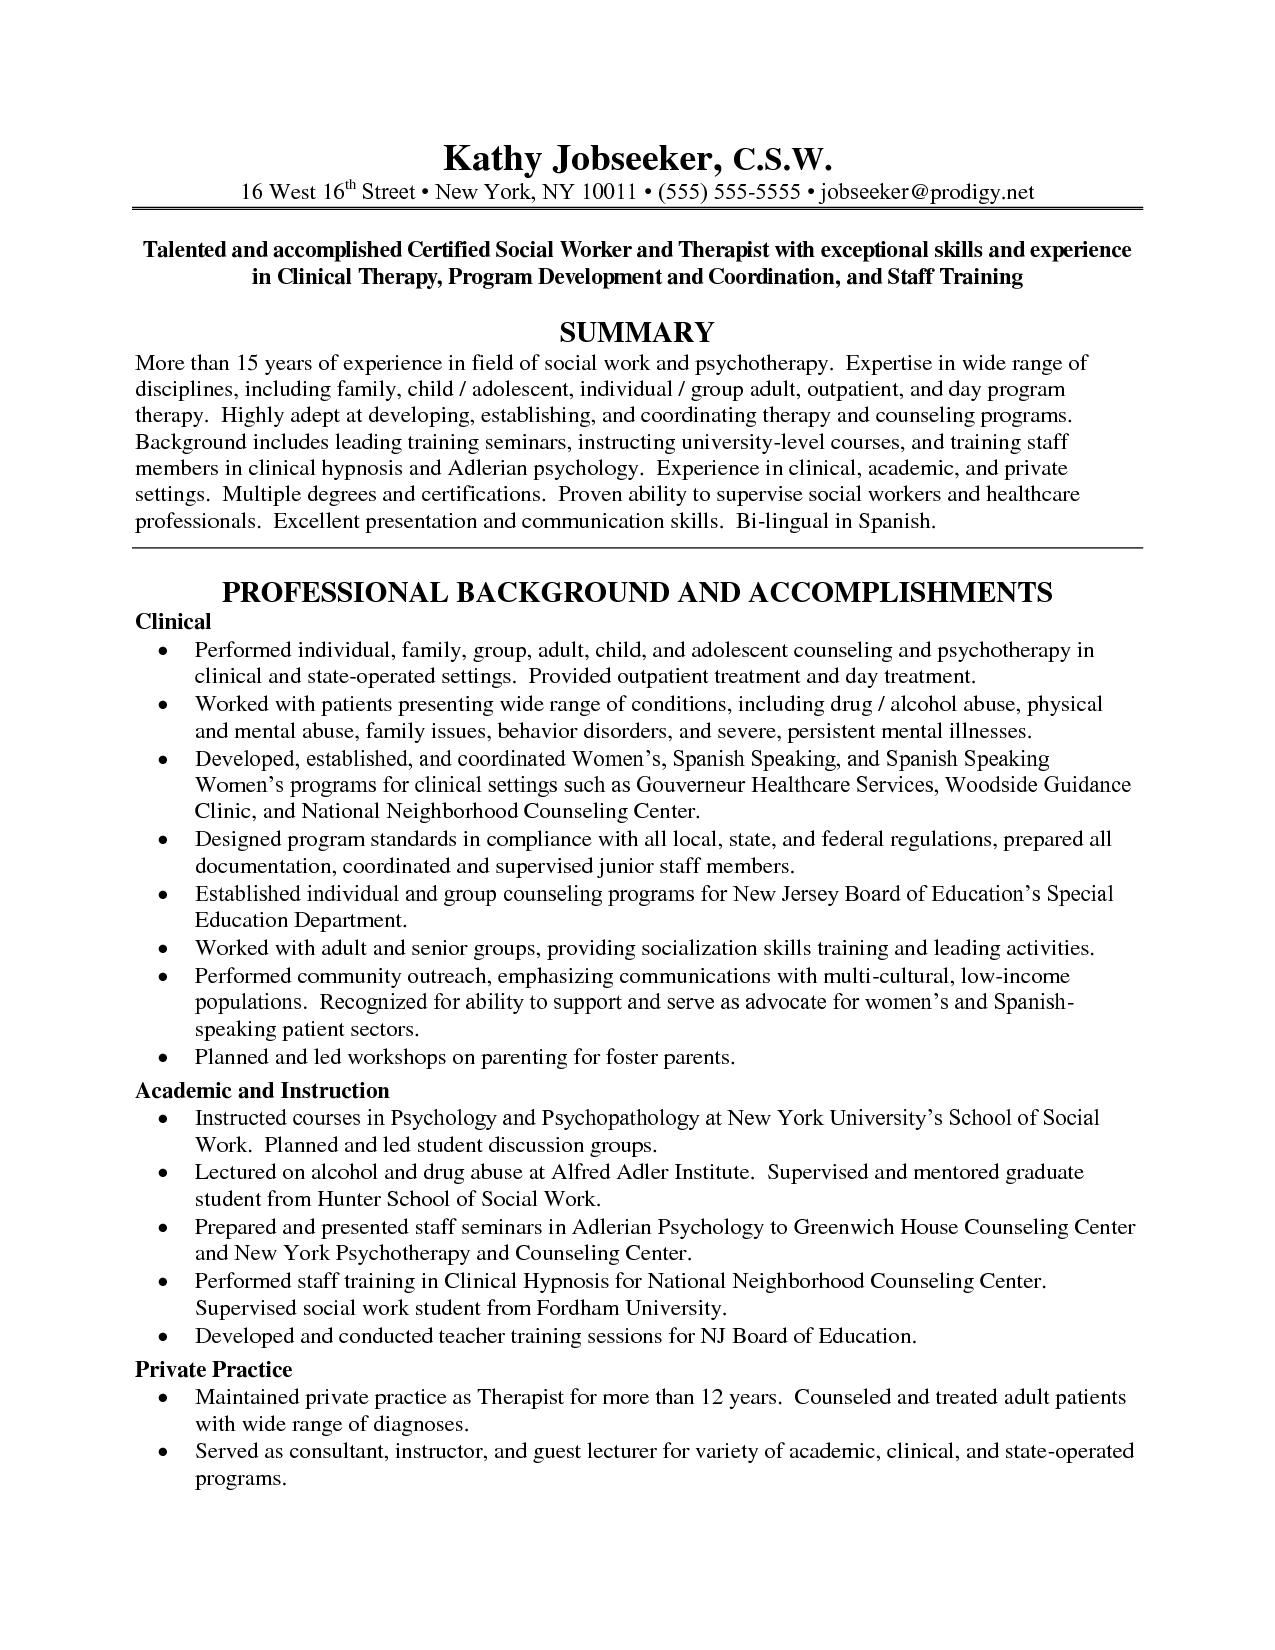 social work resume examples social work resume with license social work resume - Examples Of Work Resumes